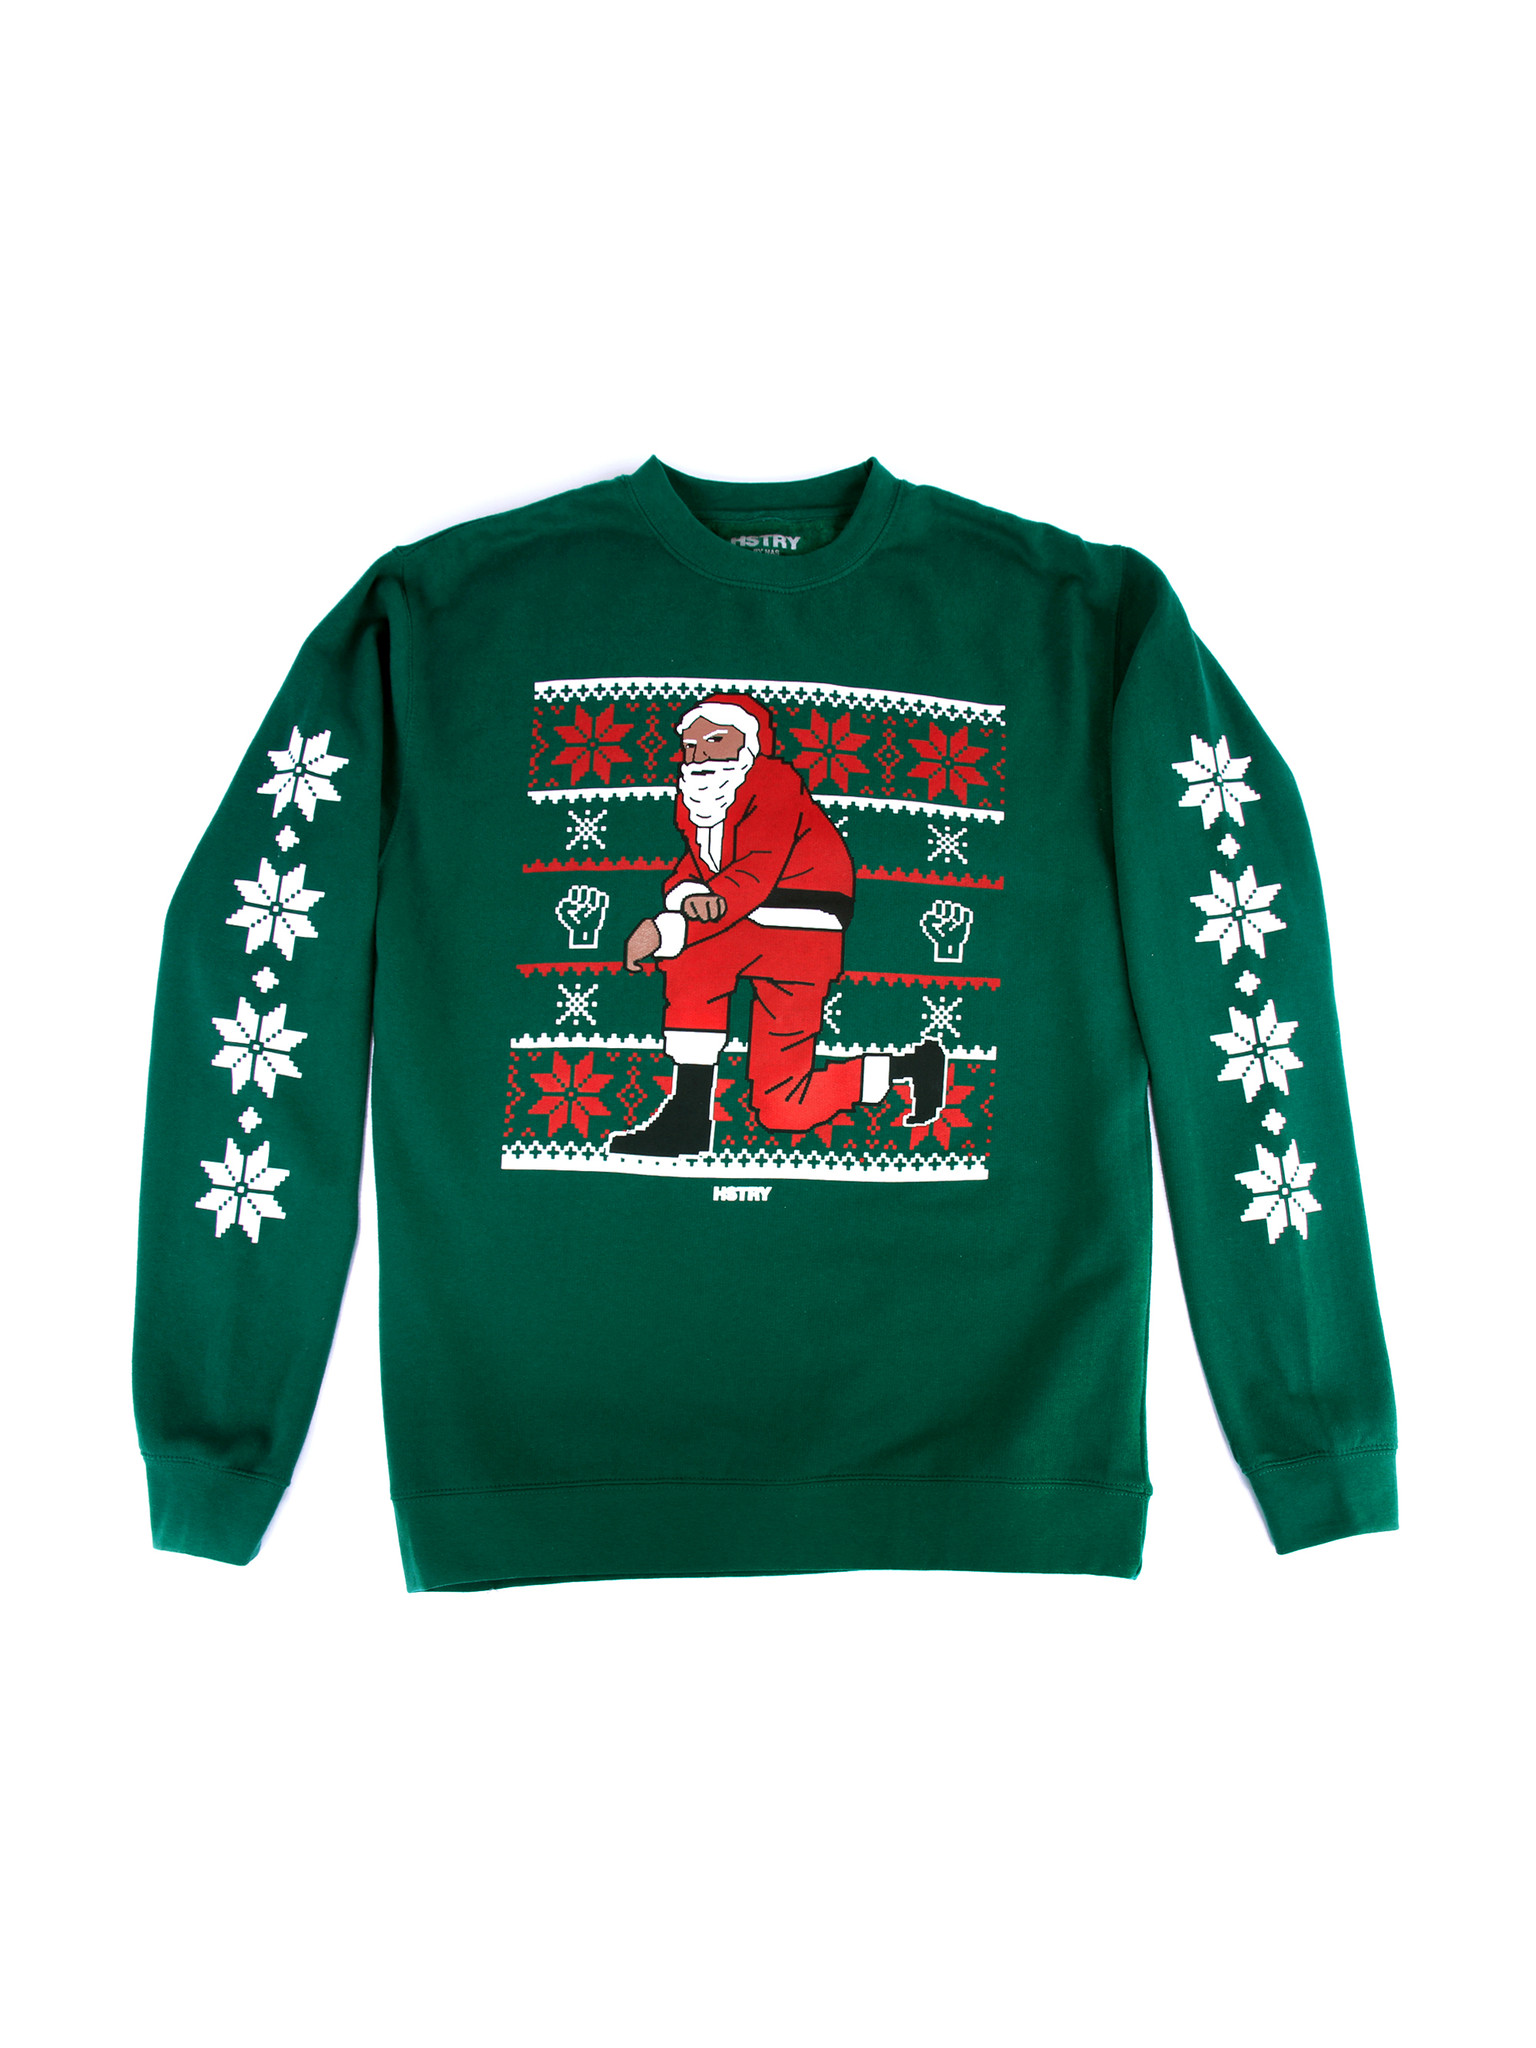 Nas Releases a Collection of Kneeling Santa Christmas Sweaters ...